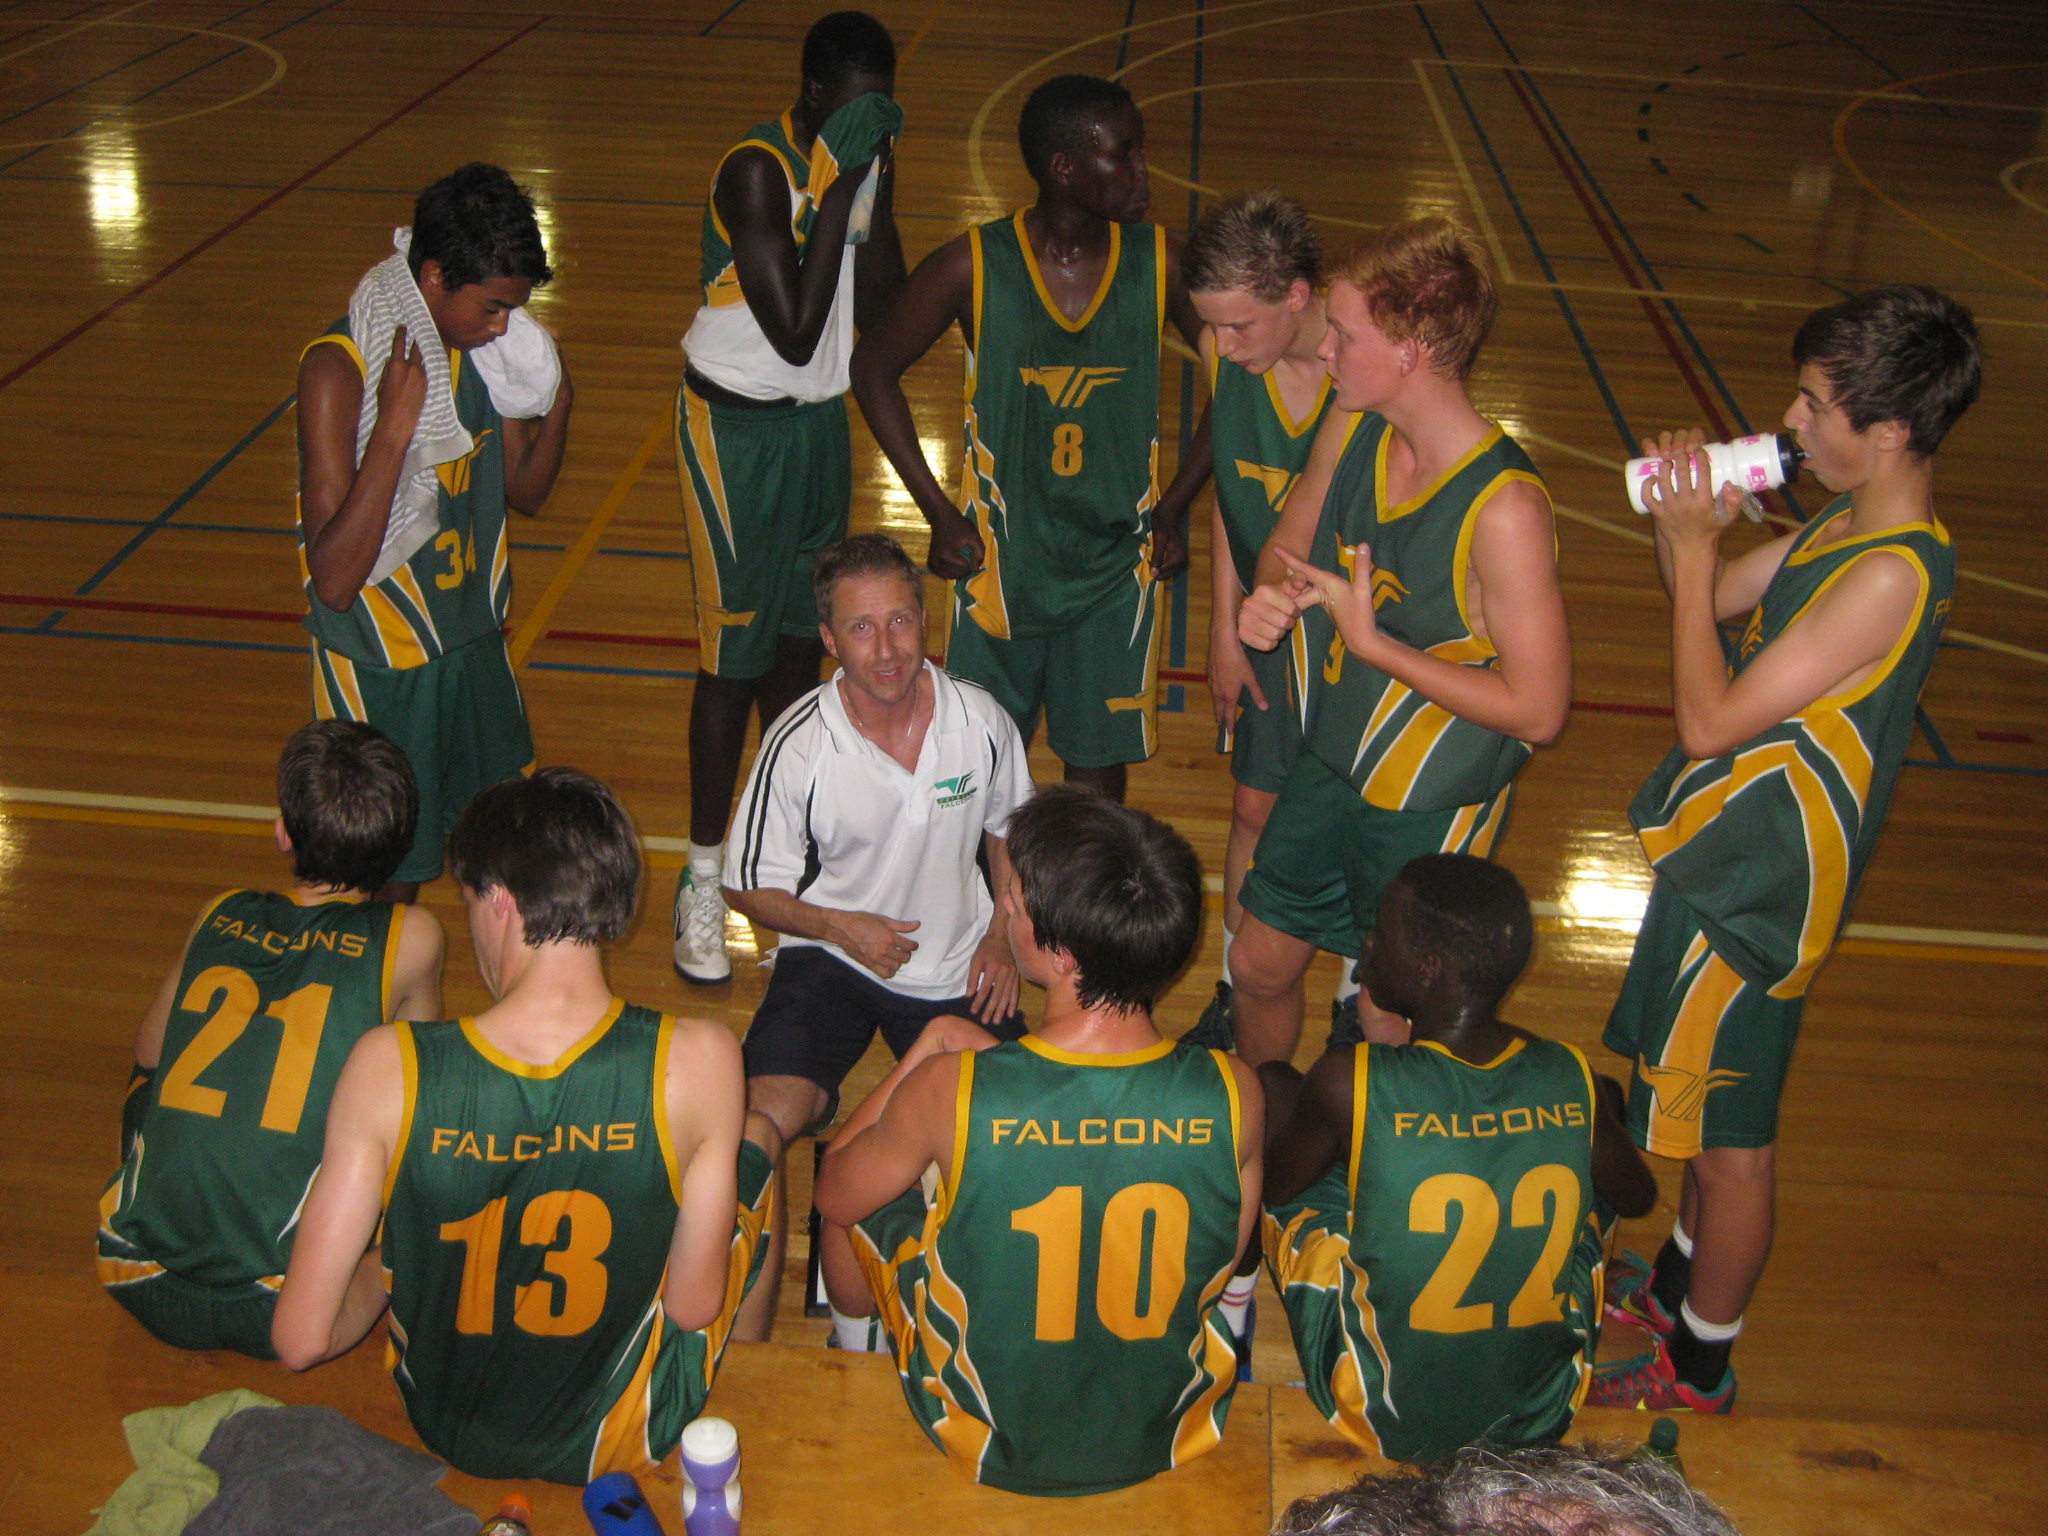 Basketball Coaching: 3 Special Considerations to Make for Your Players